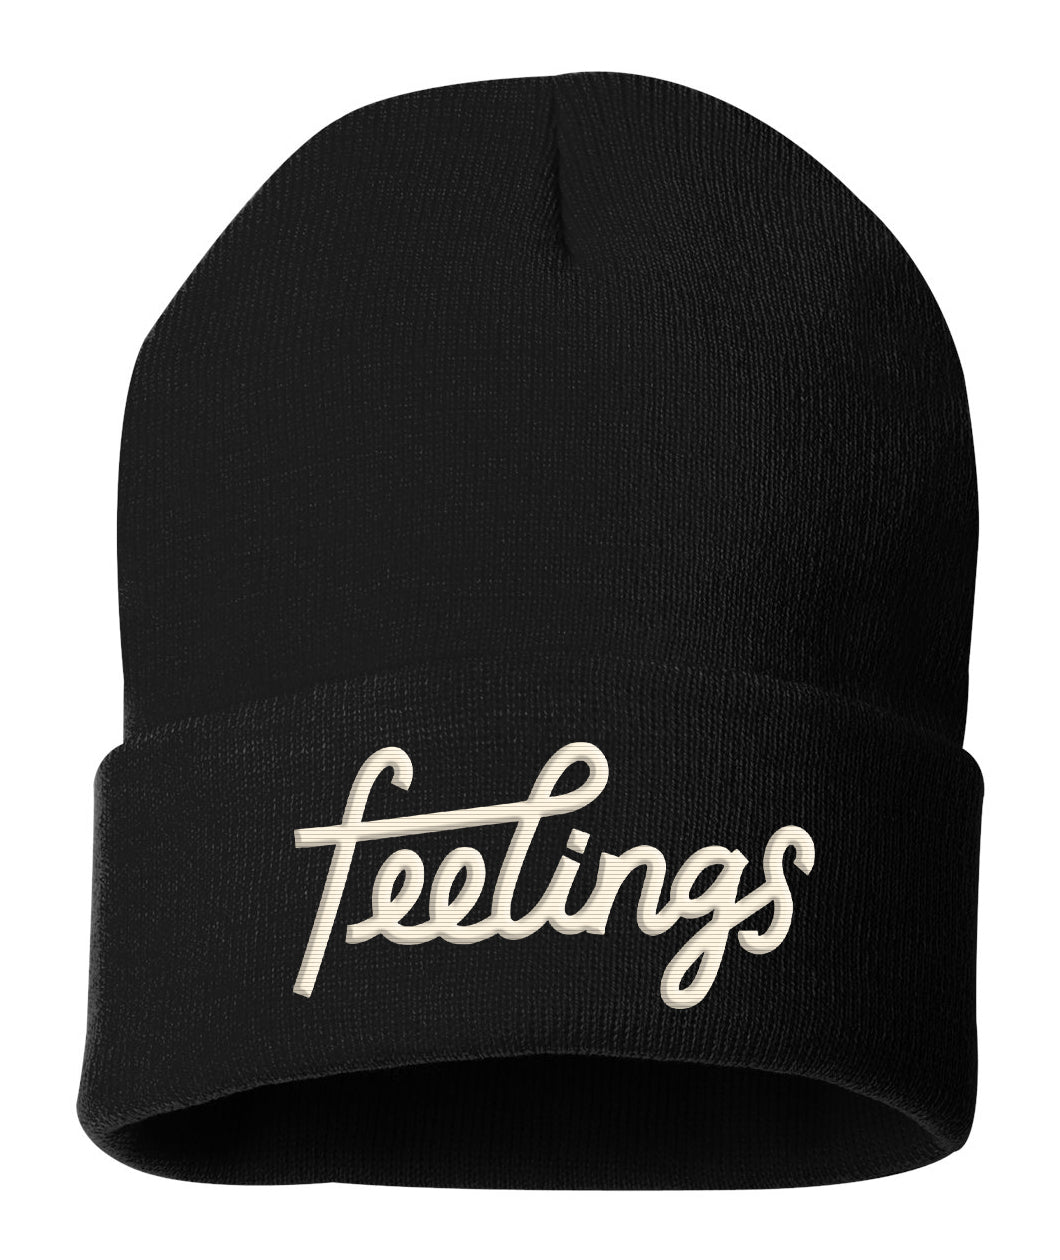 Feelings Beanie